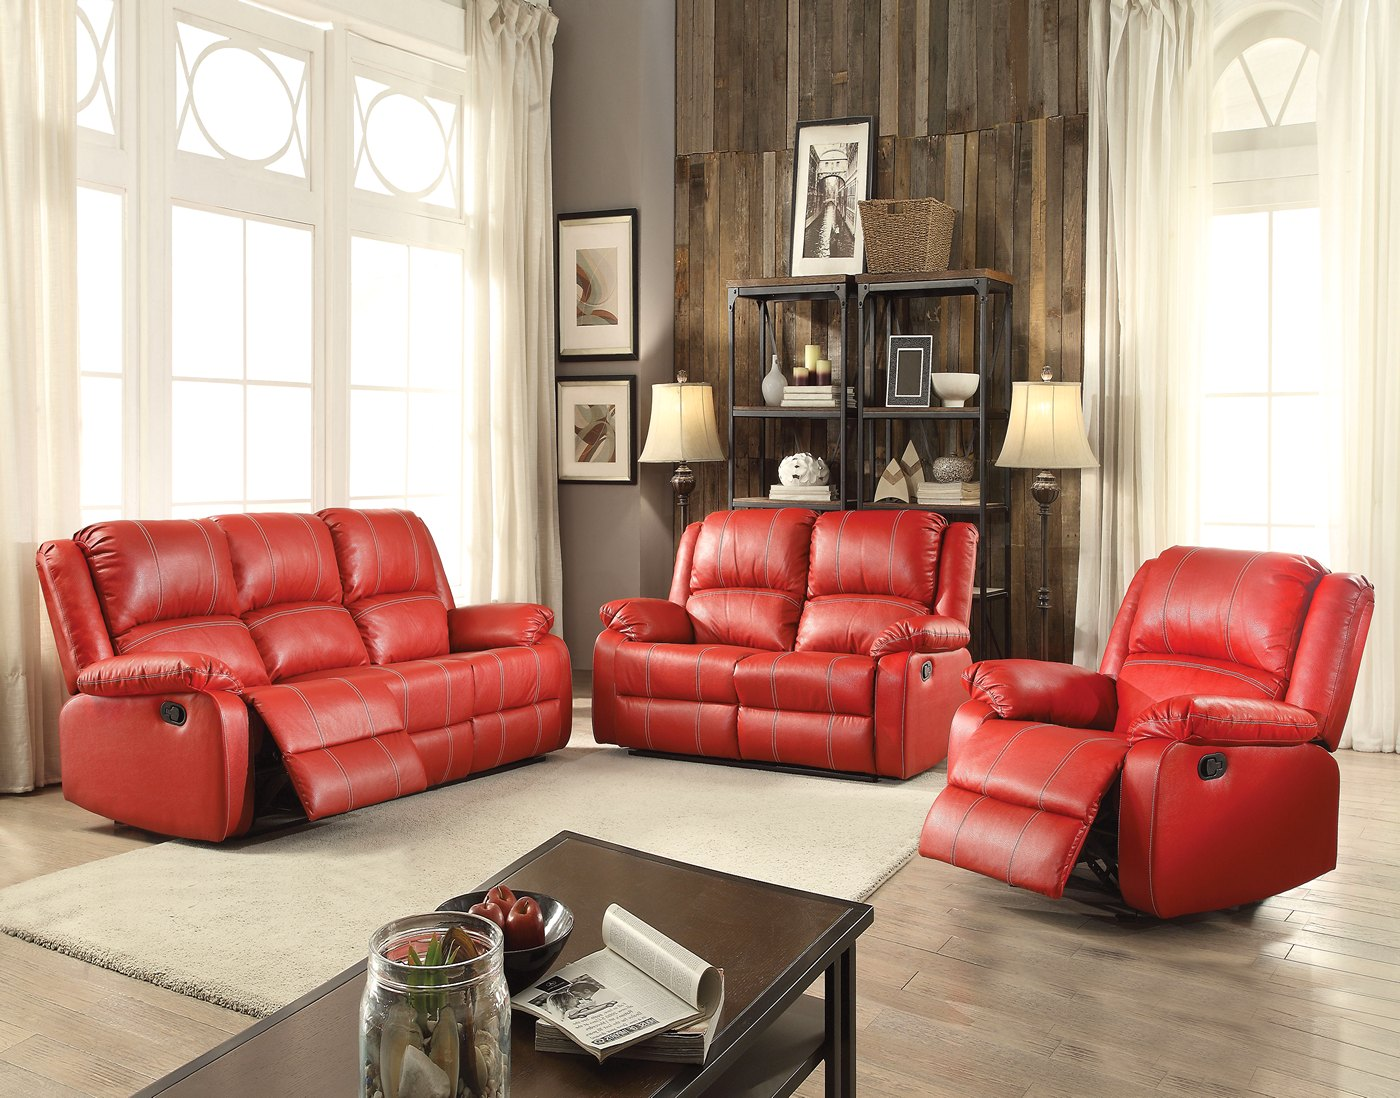 faux leather reclining sofa set designer sofas uk zimra contemporary and loveseat in red